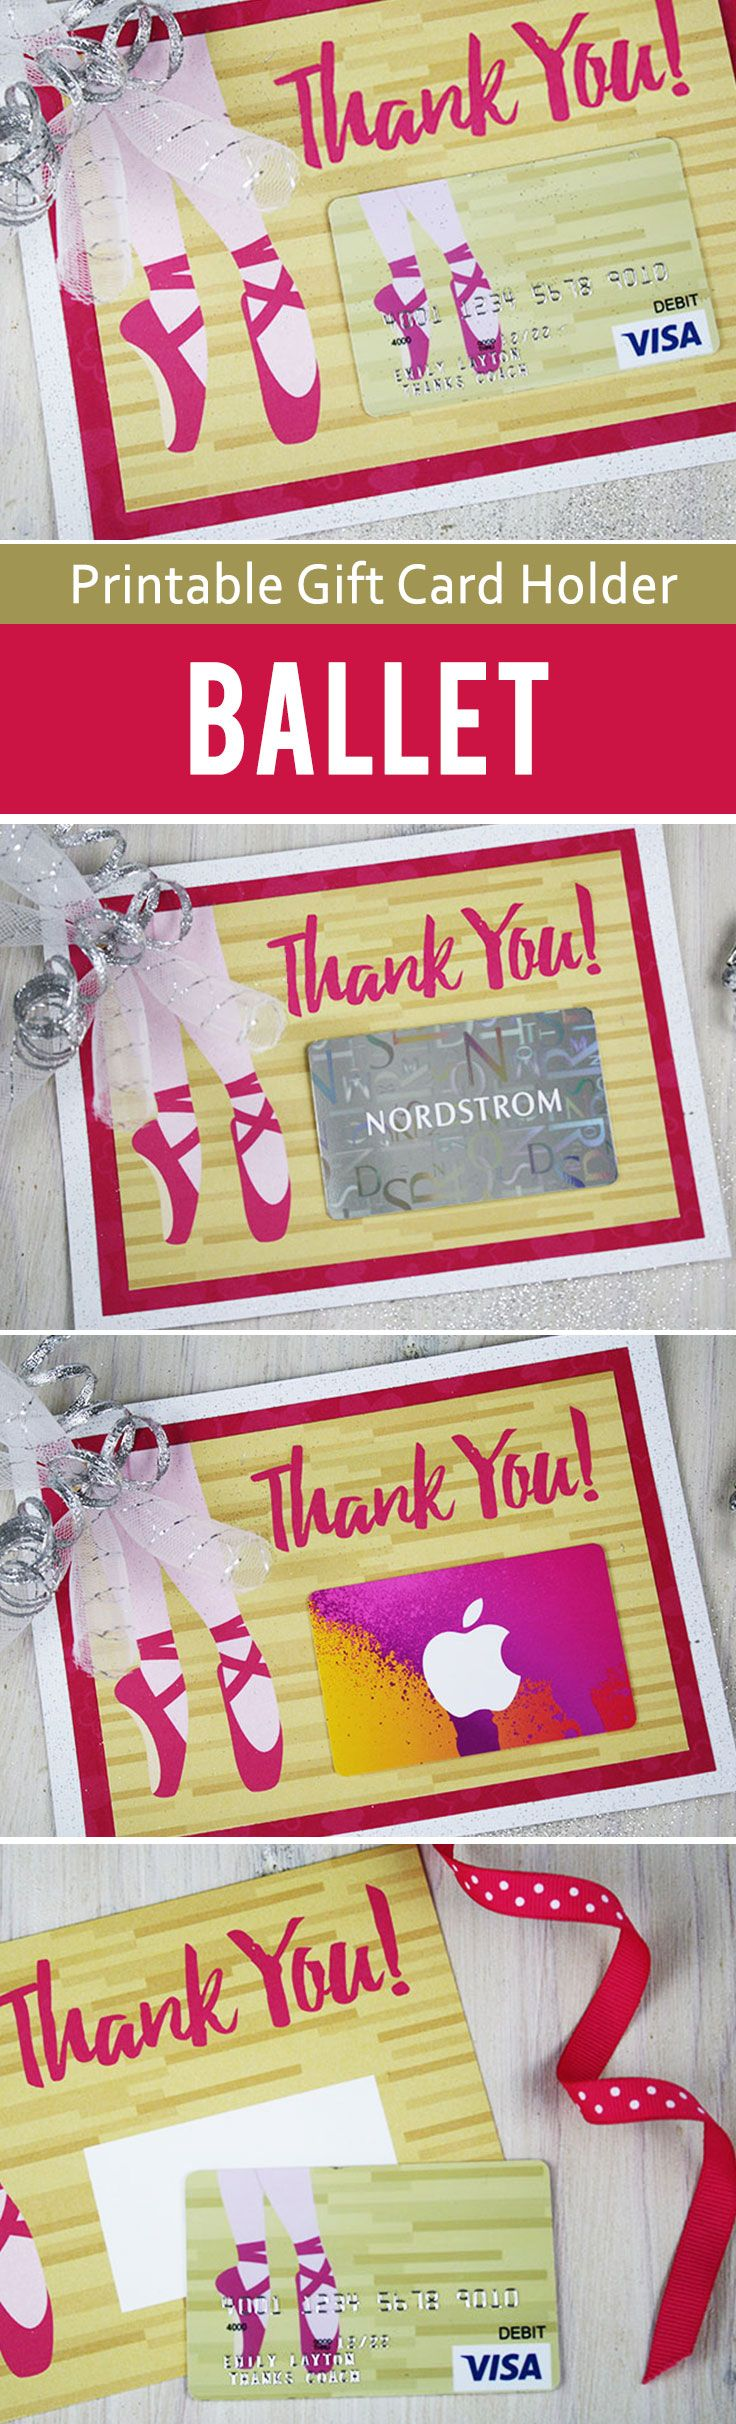 Free printable gift card holder for ballet teacher or coach. Use this cute idea to put a tutu on the gift card. Great for ballet or dance coach.